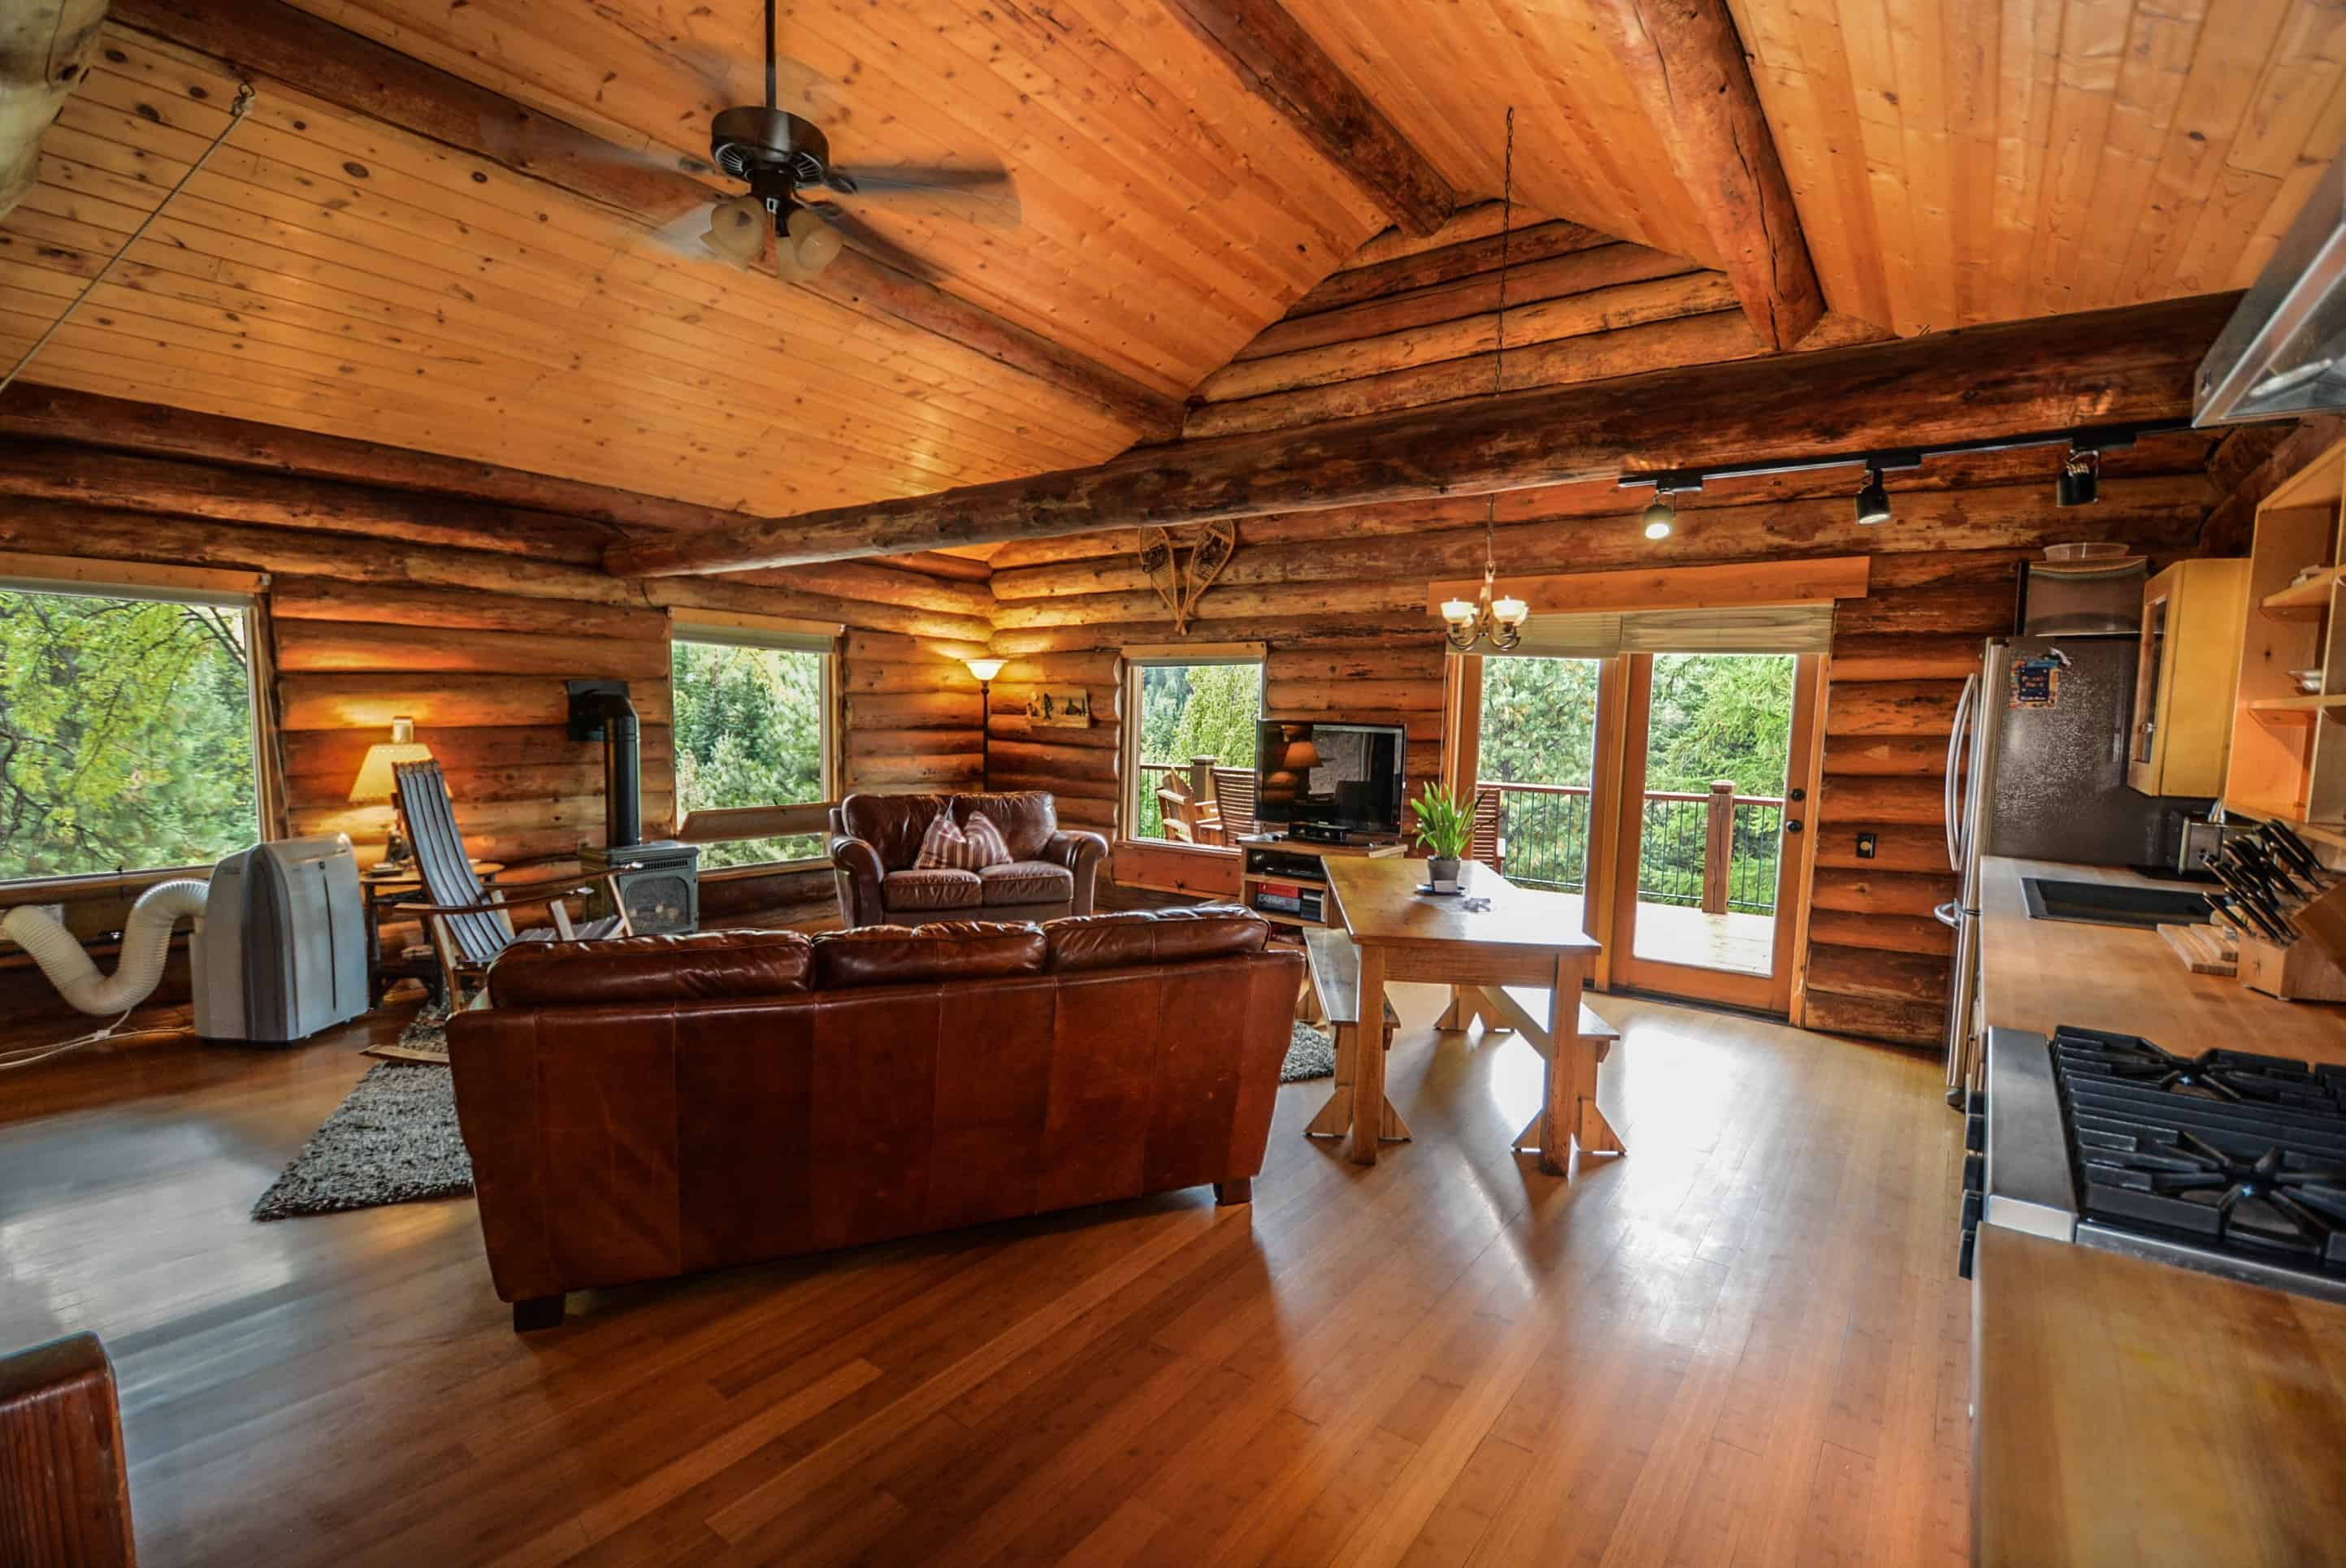 Creating The Log Cabin Feel In Your Home